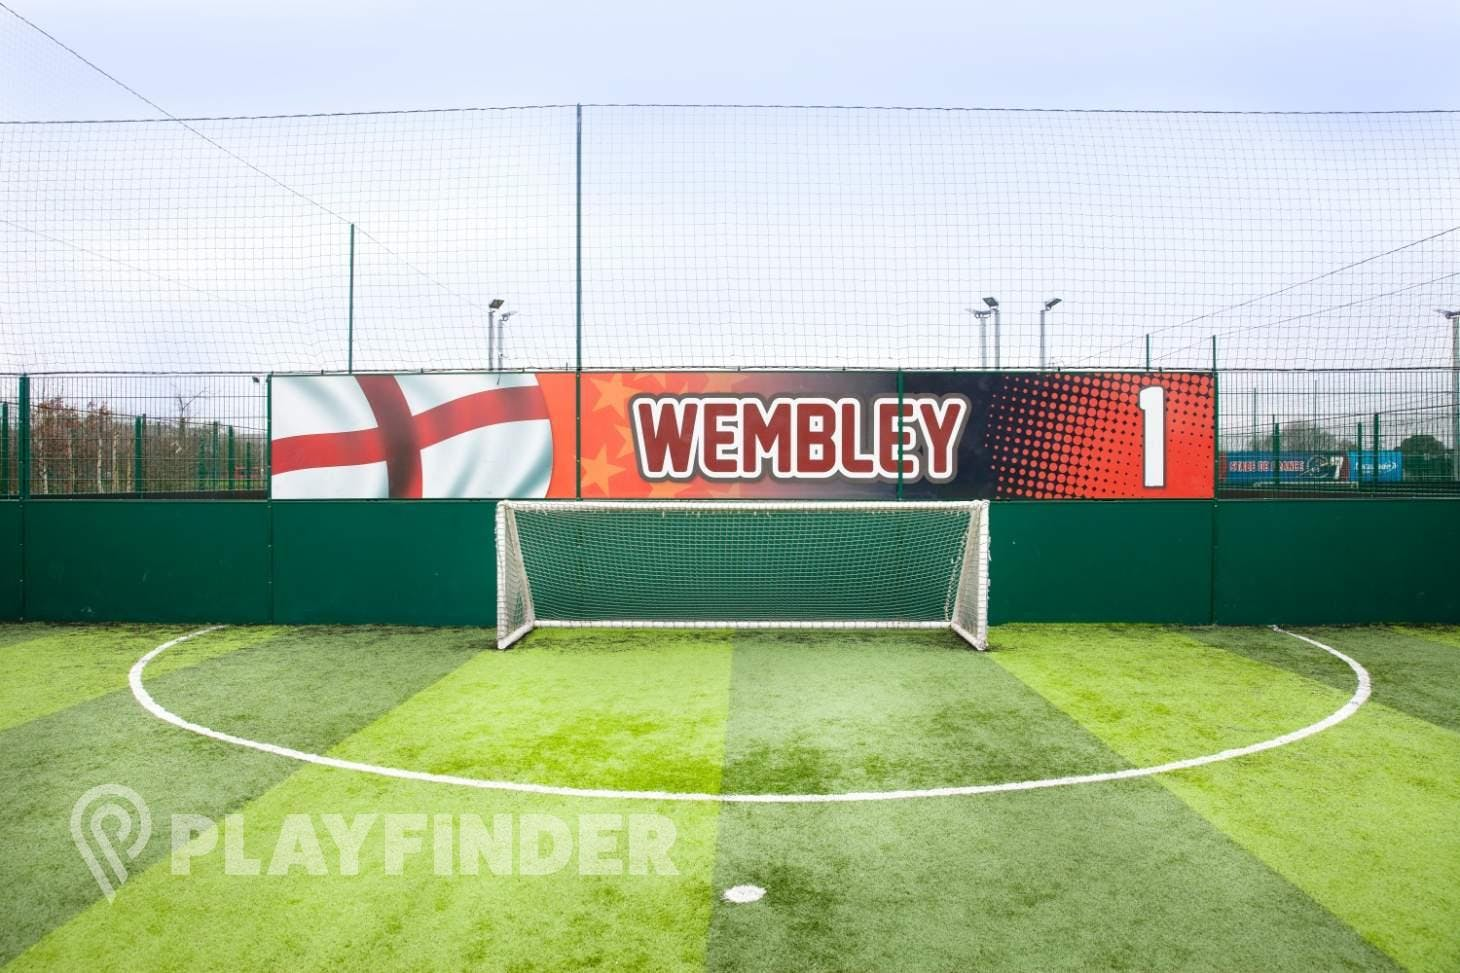 Goals Gillette Corner 5 a side | 3G Astroturf football pitch